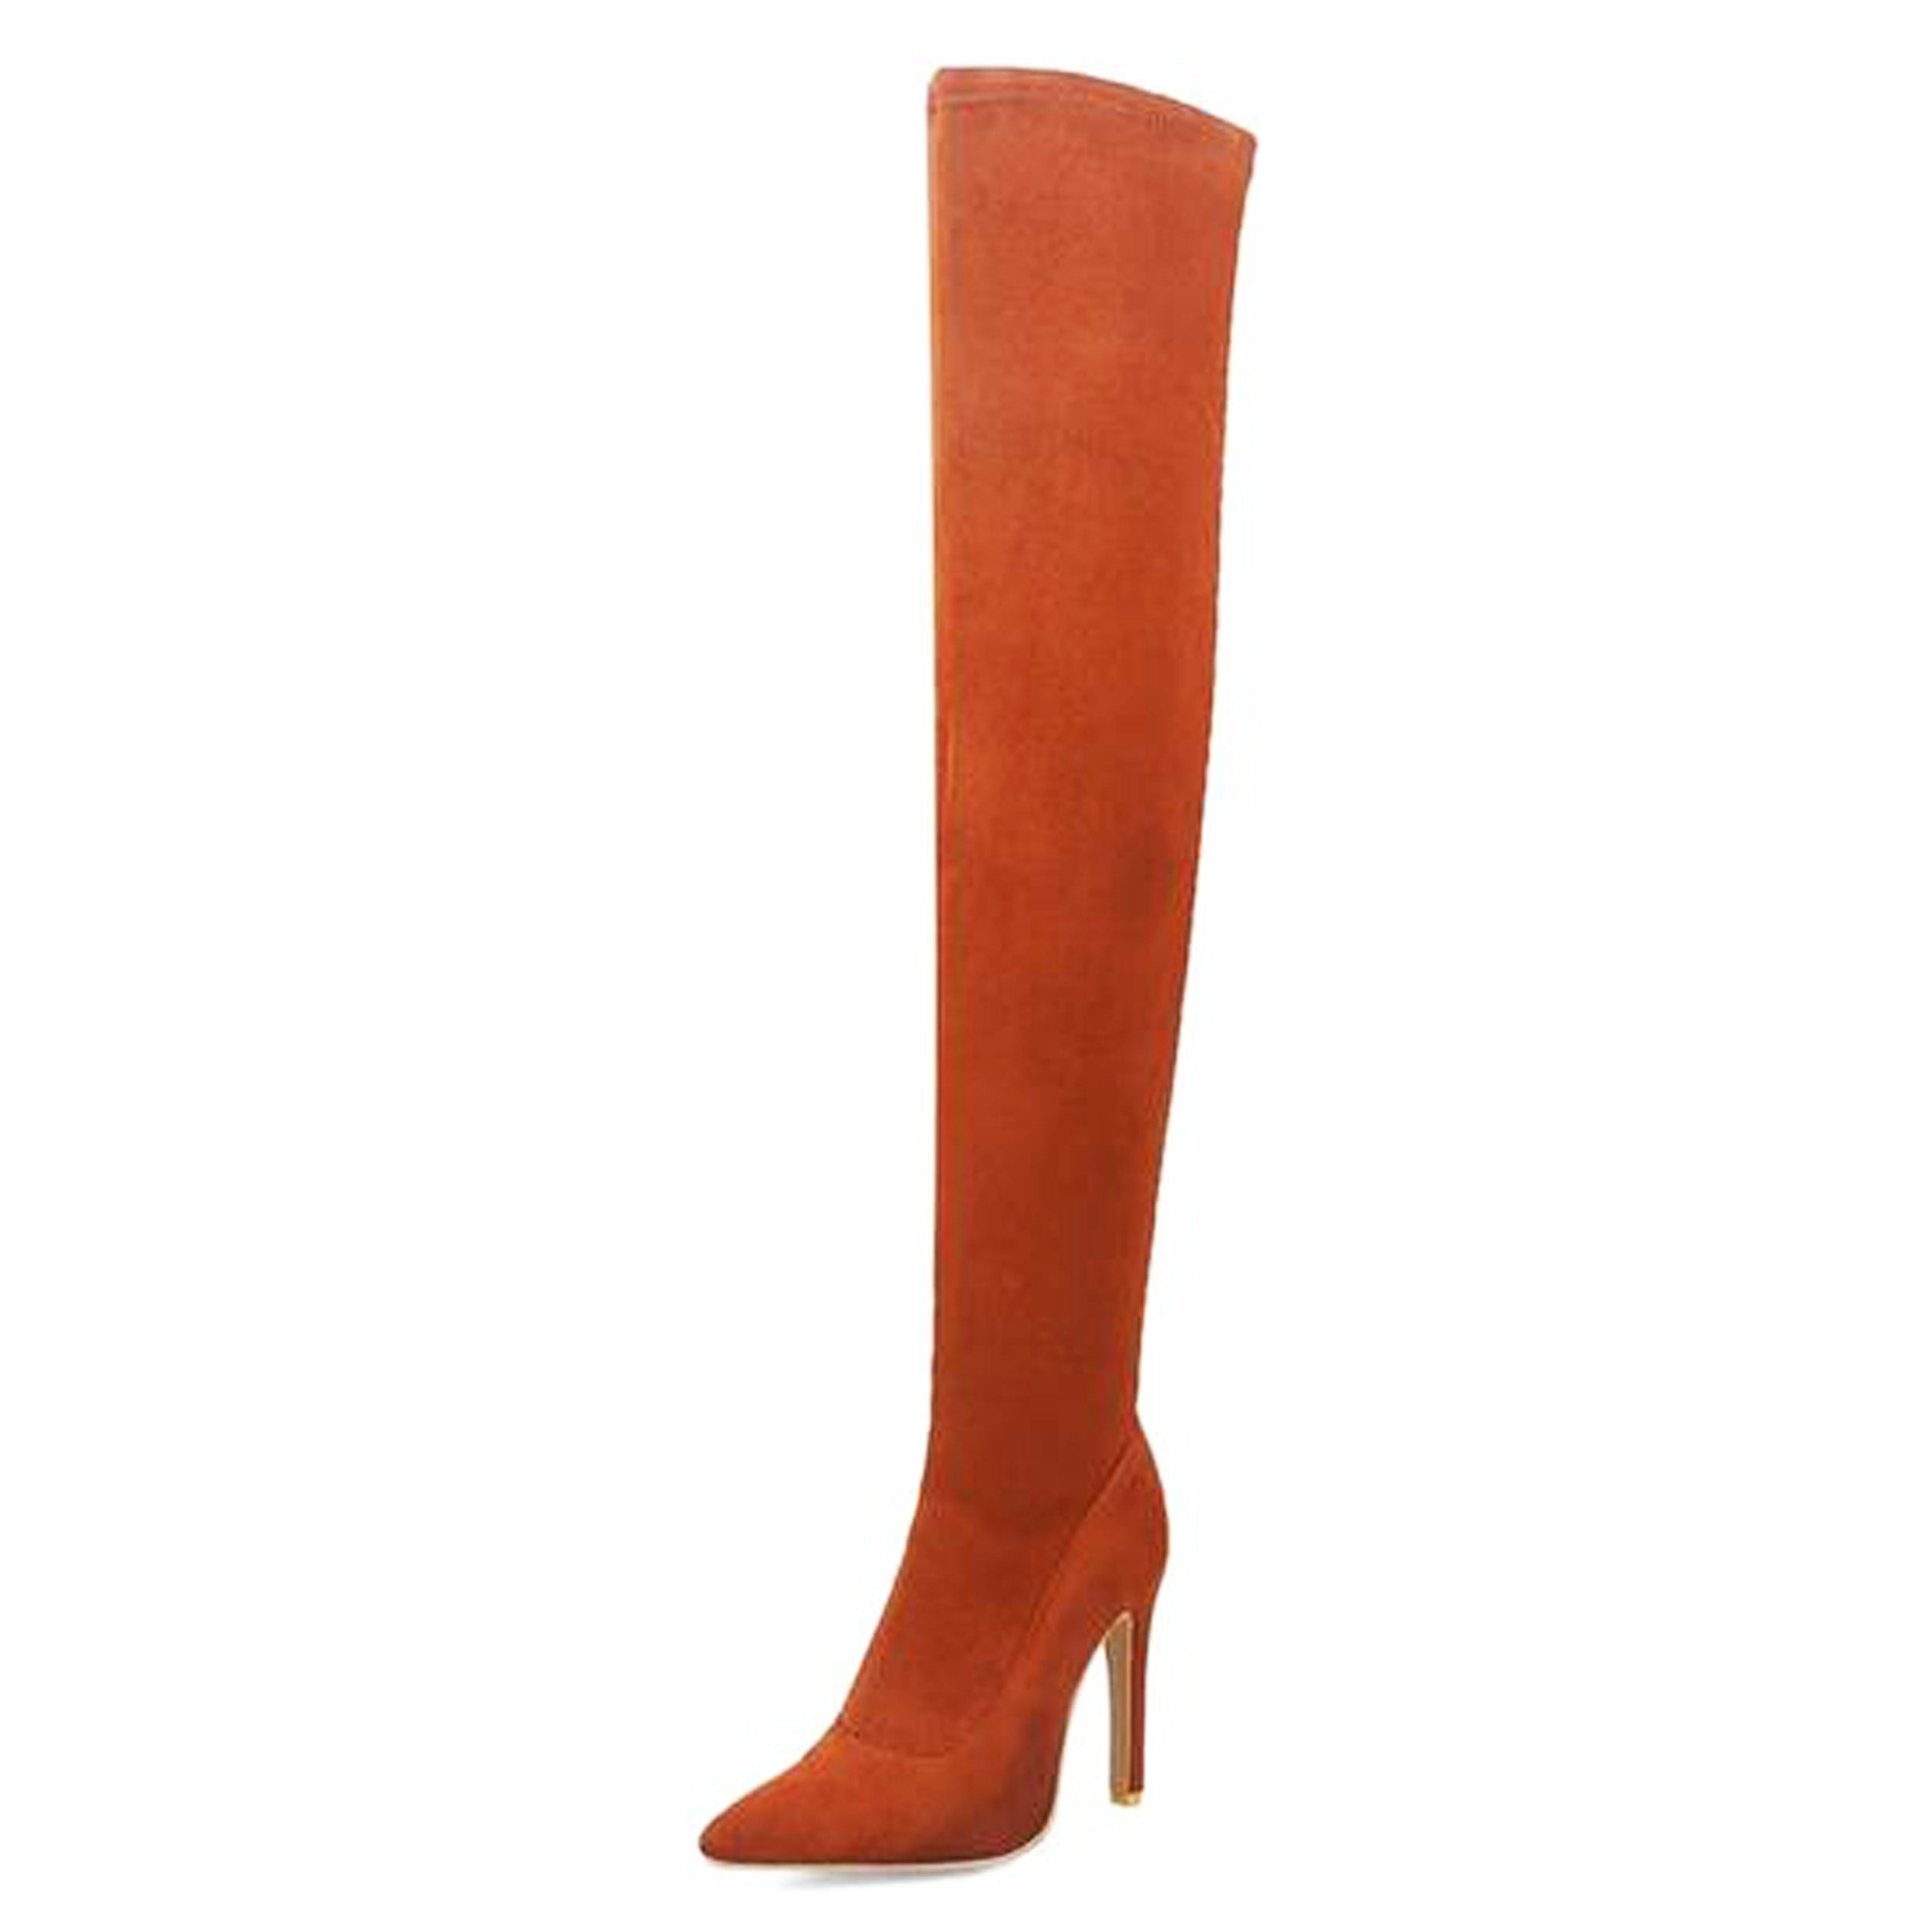 Desert - Thigh High Stiletto Heel Boot - Izzabel